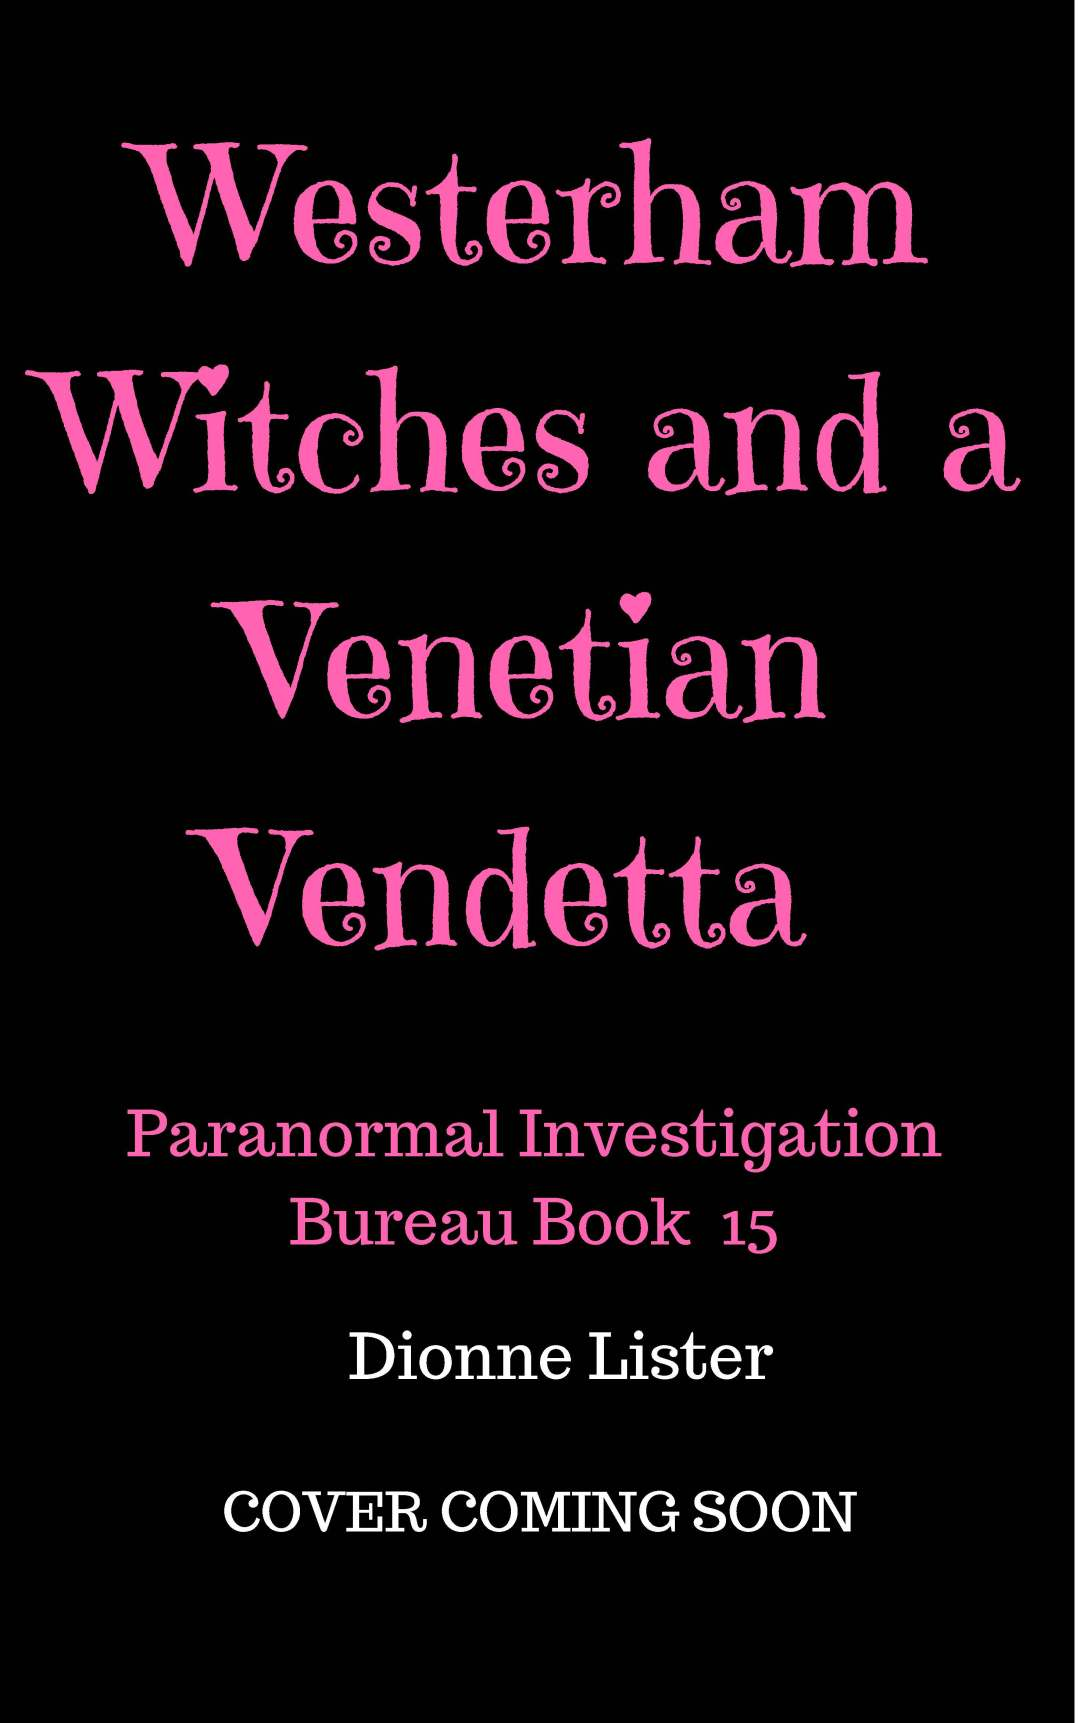 Westerham Witches & a Venetian Vendetta cover coming soon-2